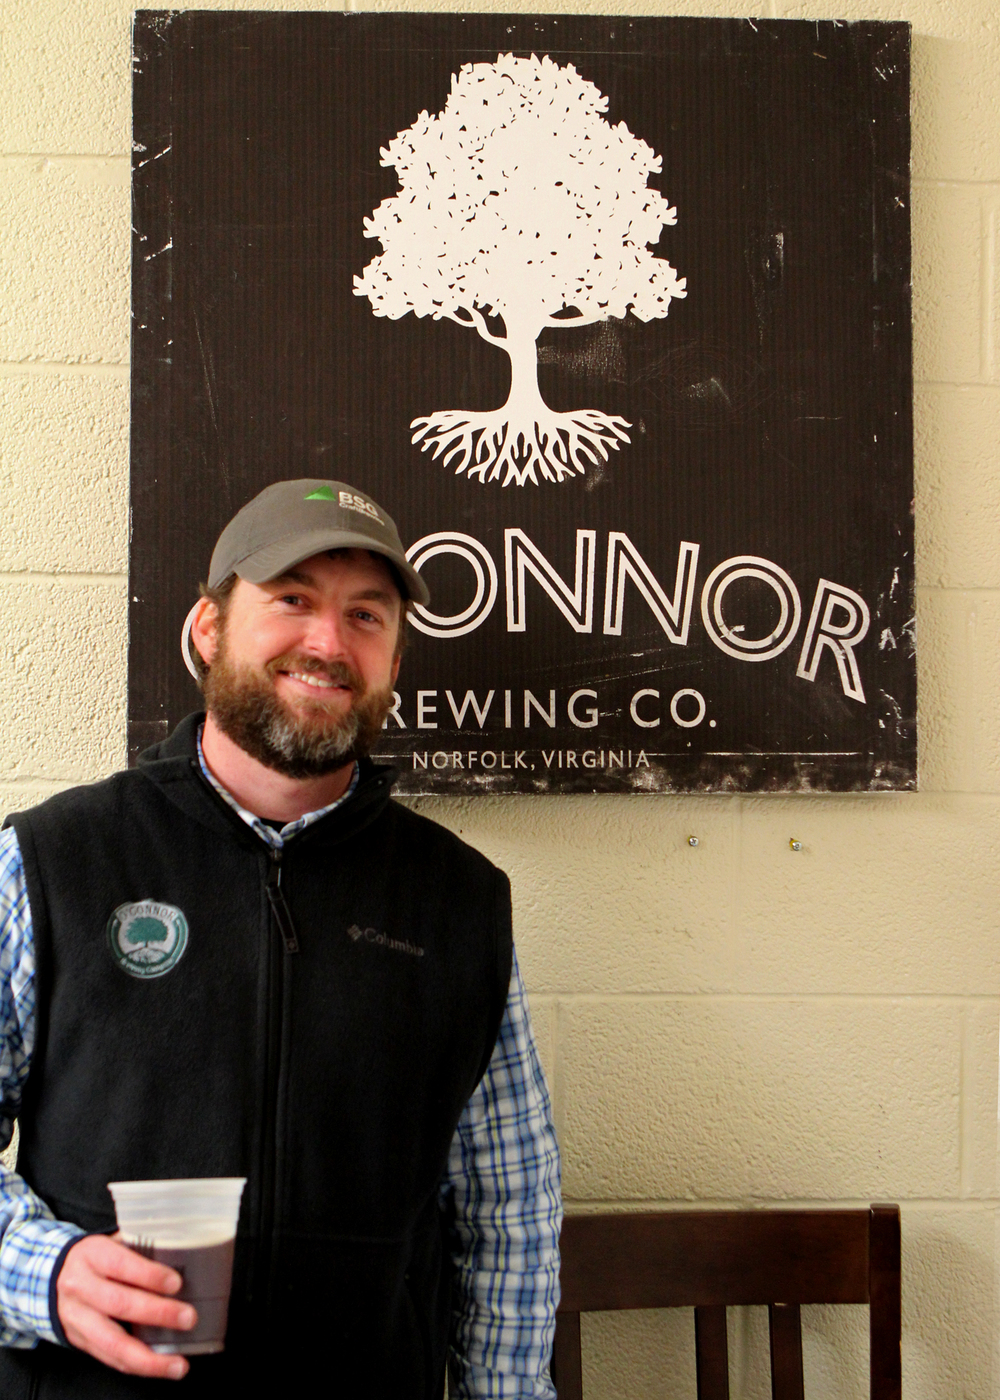 Kevin O'Connor Brewer/Owner